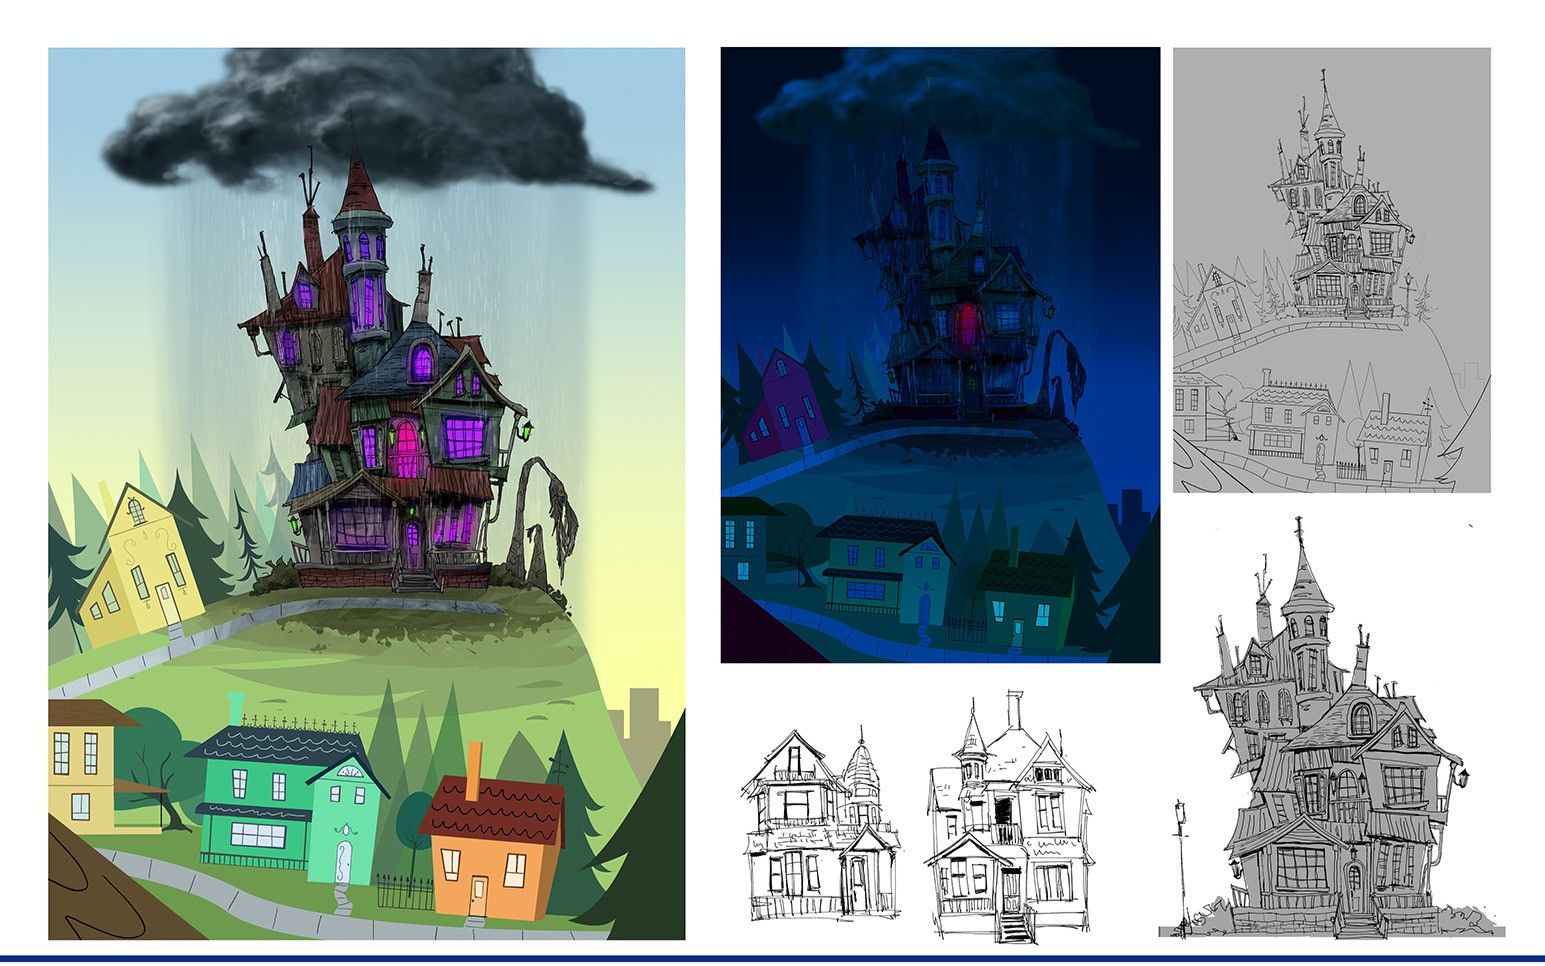 Haunted house in BoxTroll and Foster's Home For Imaginary Friends Style